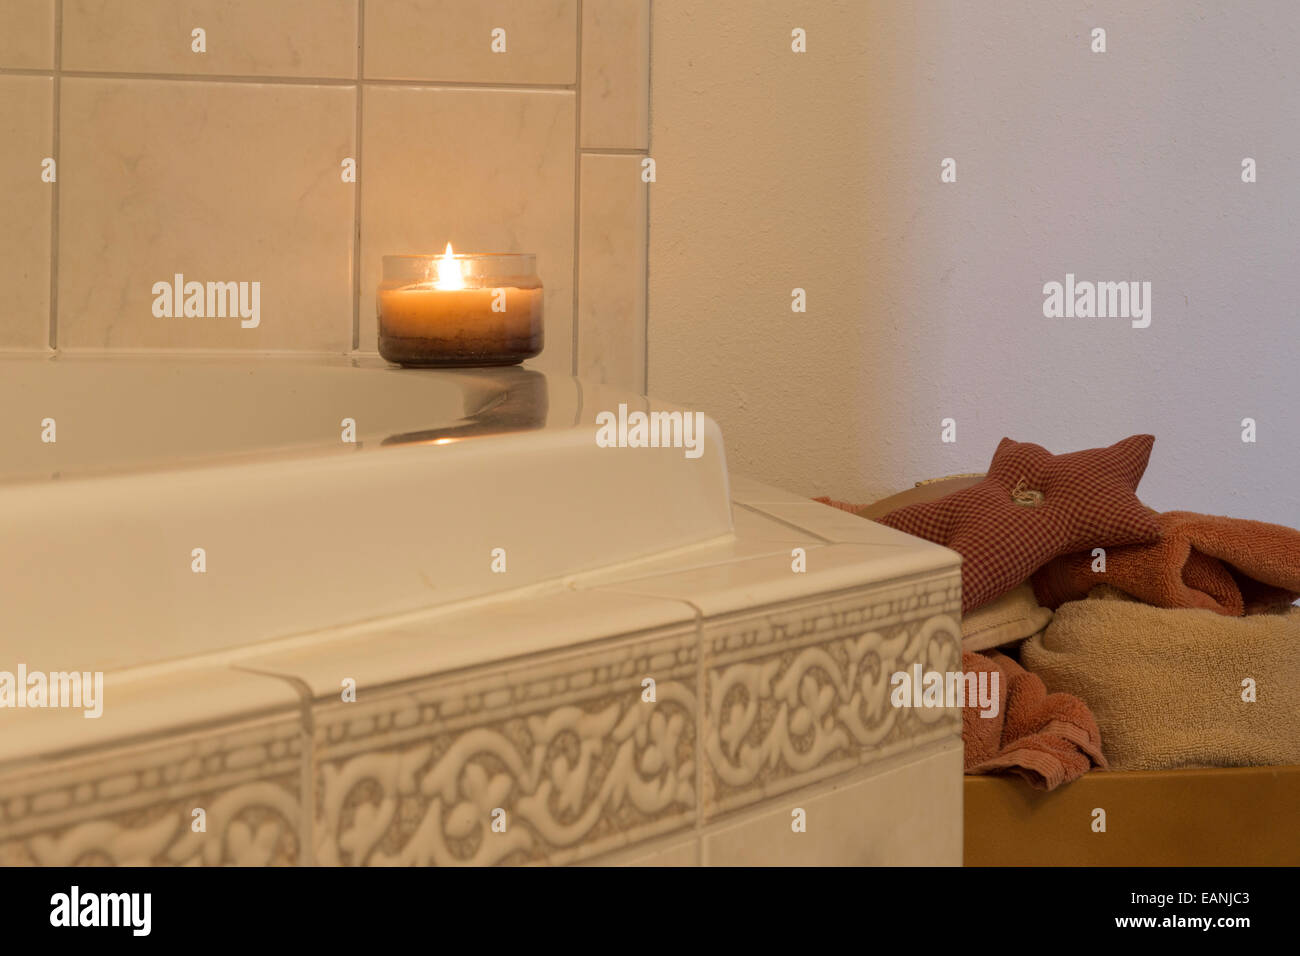 Bathroom Jacuzzi Tub Tile Details Stock Photo: 75463475 - Alamy